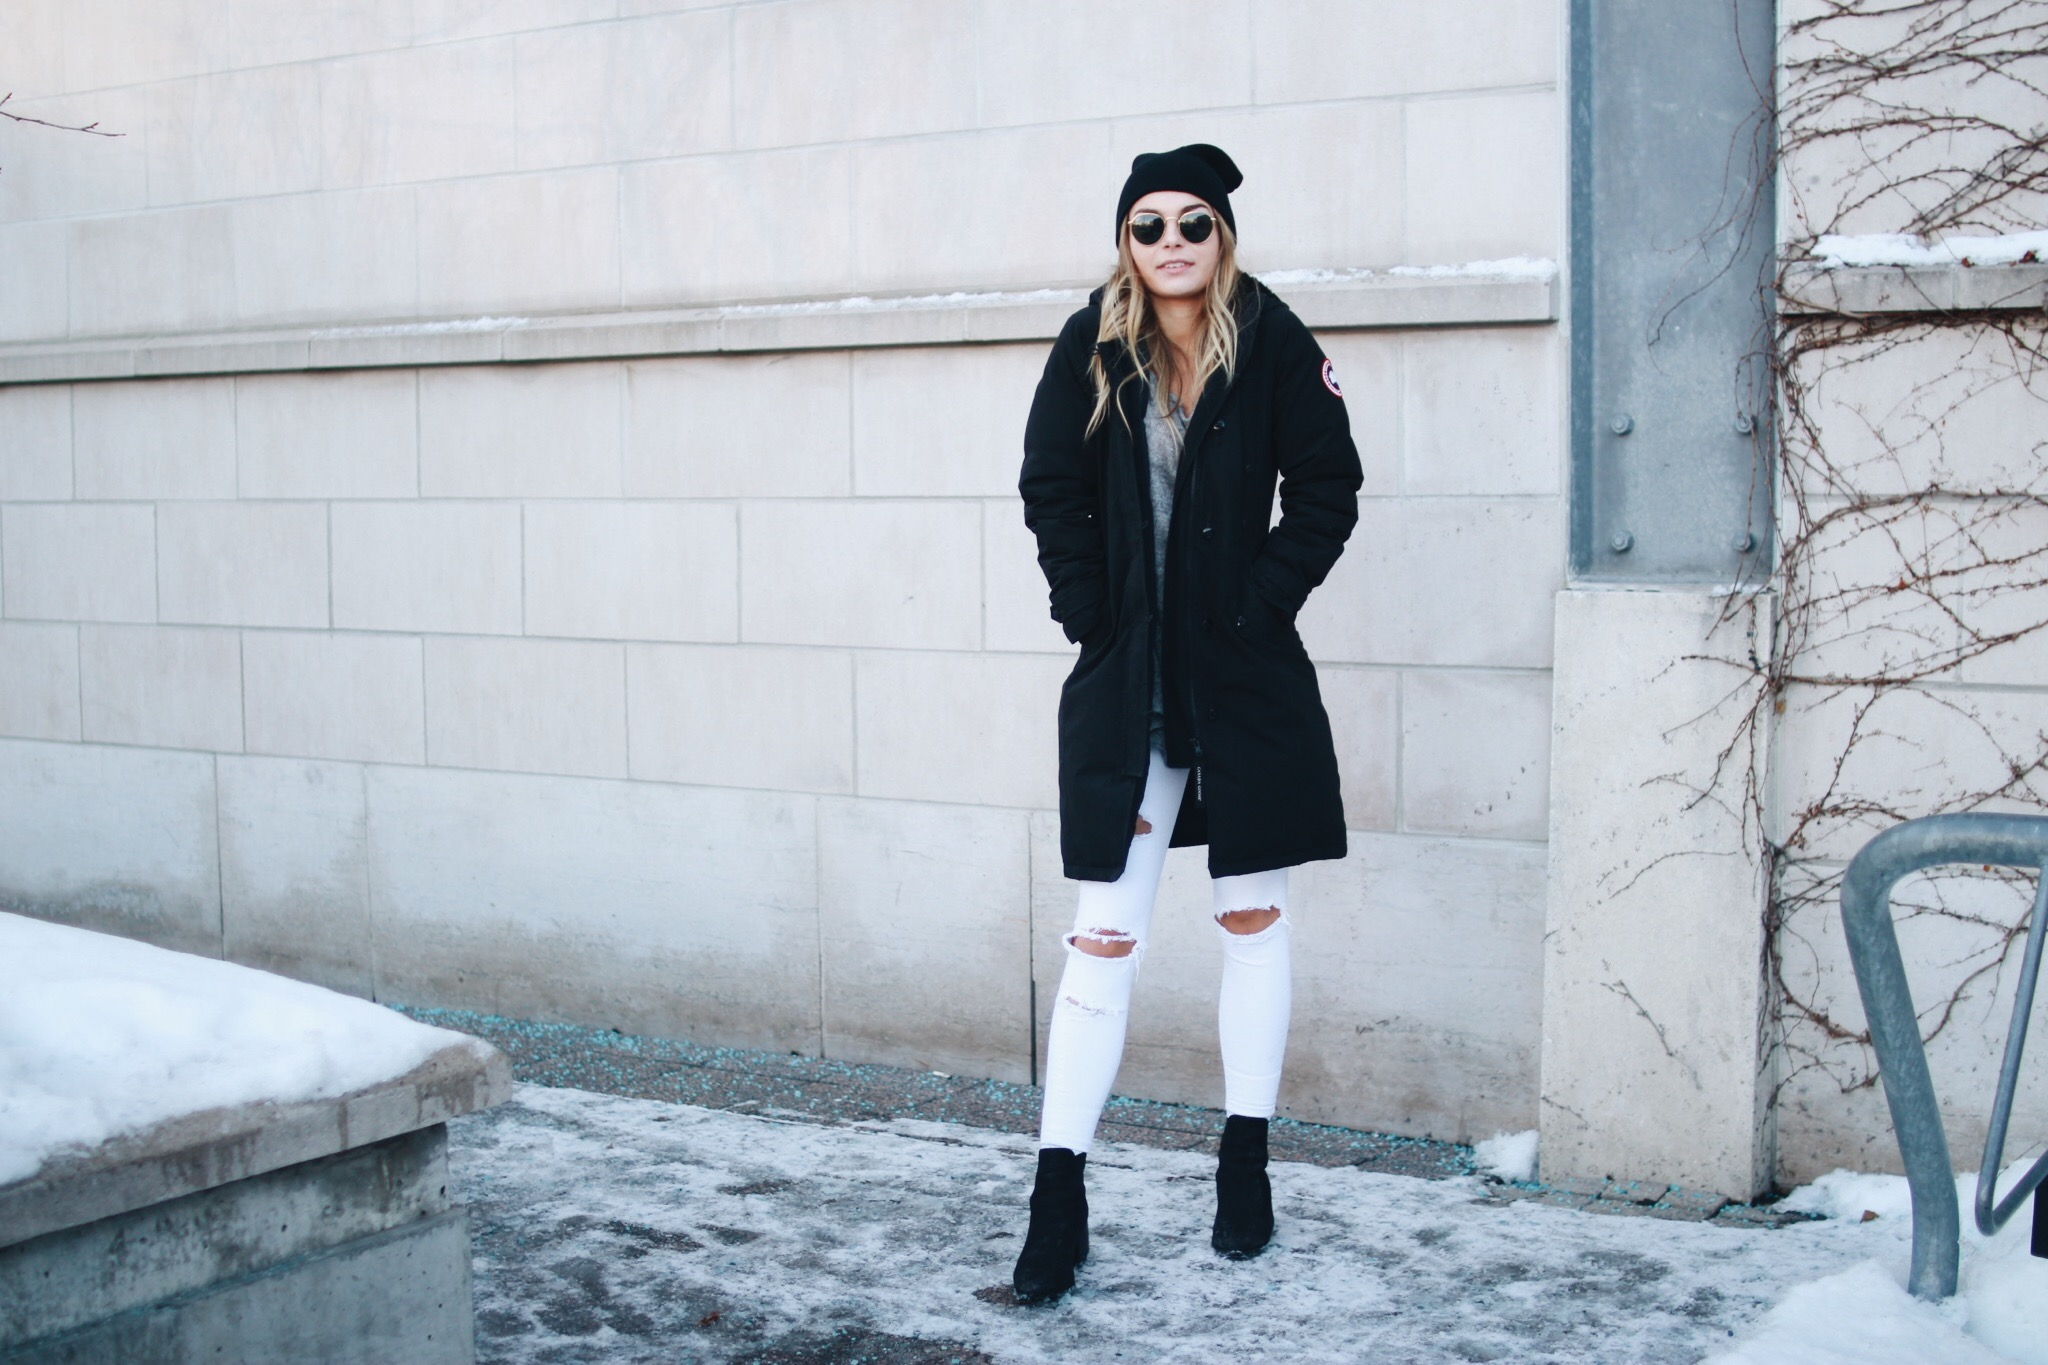 Coat: Canada Goose, Sweater: Brandy Melville, Hat: Raising the Roof, Sunglasses: Ray Ban, Pants: TopShop, Boots: Aldo